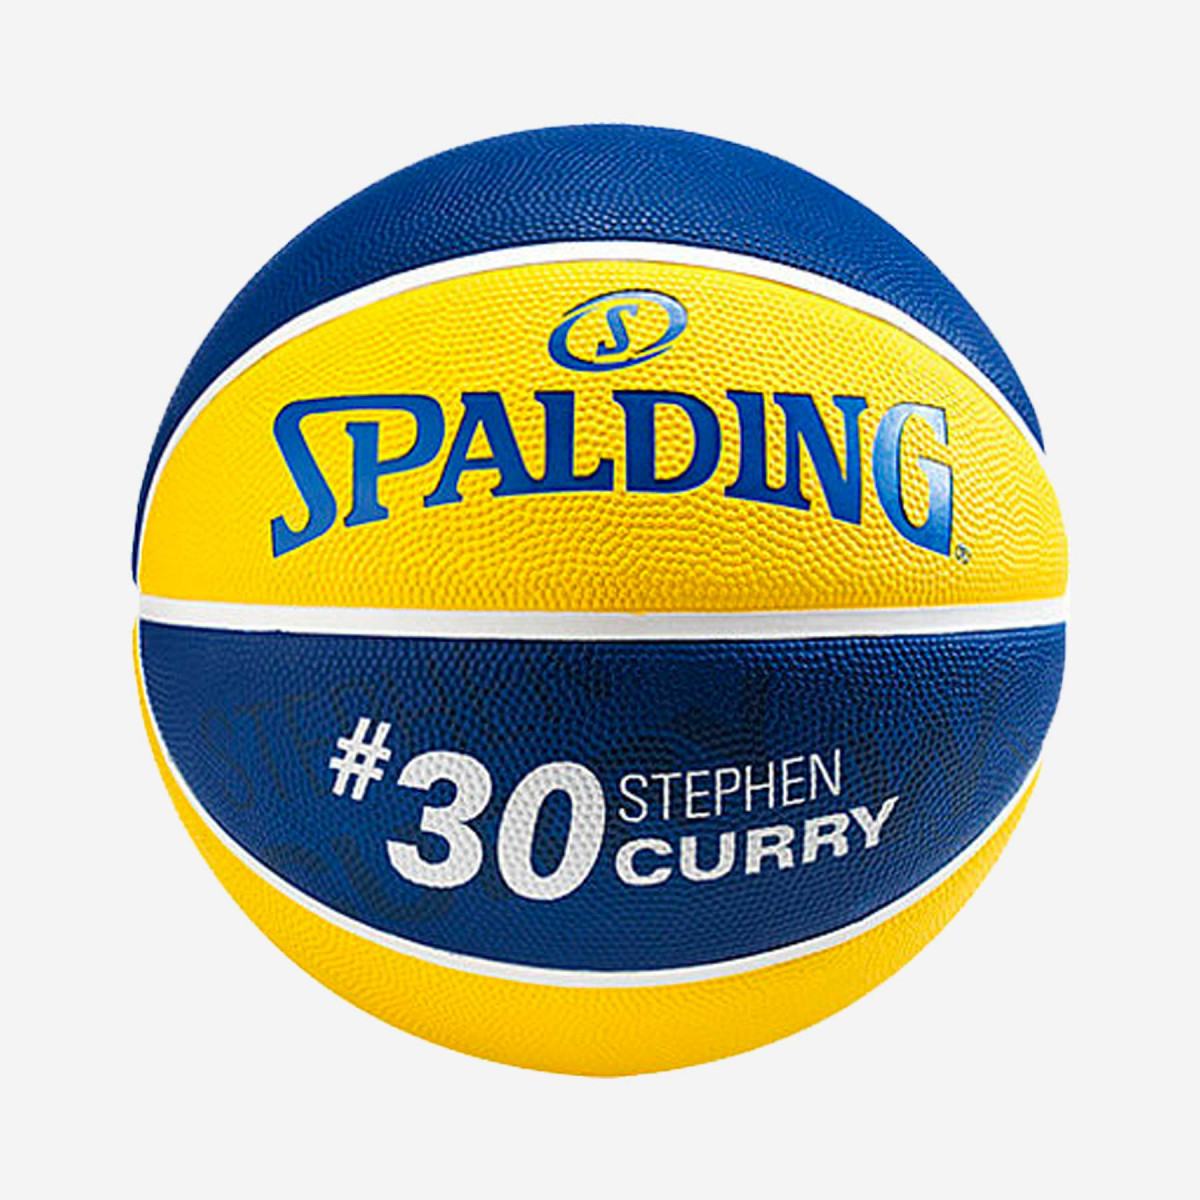 Spalding NBA Player Ball - Stephen Curry - Size 5